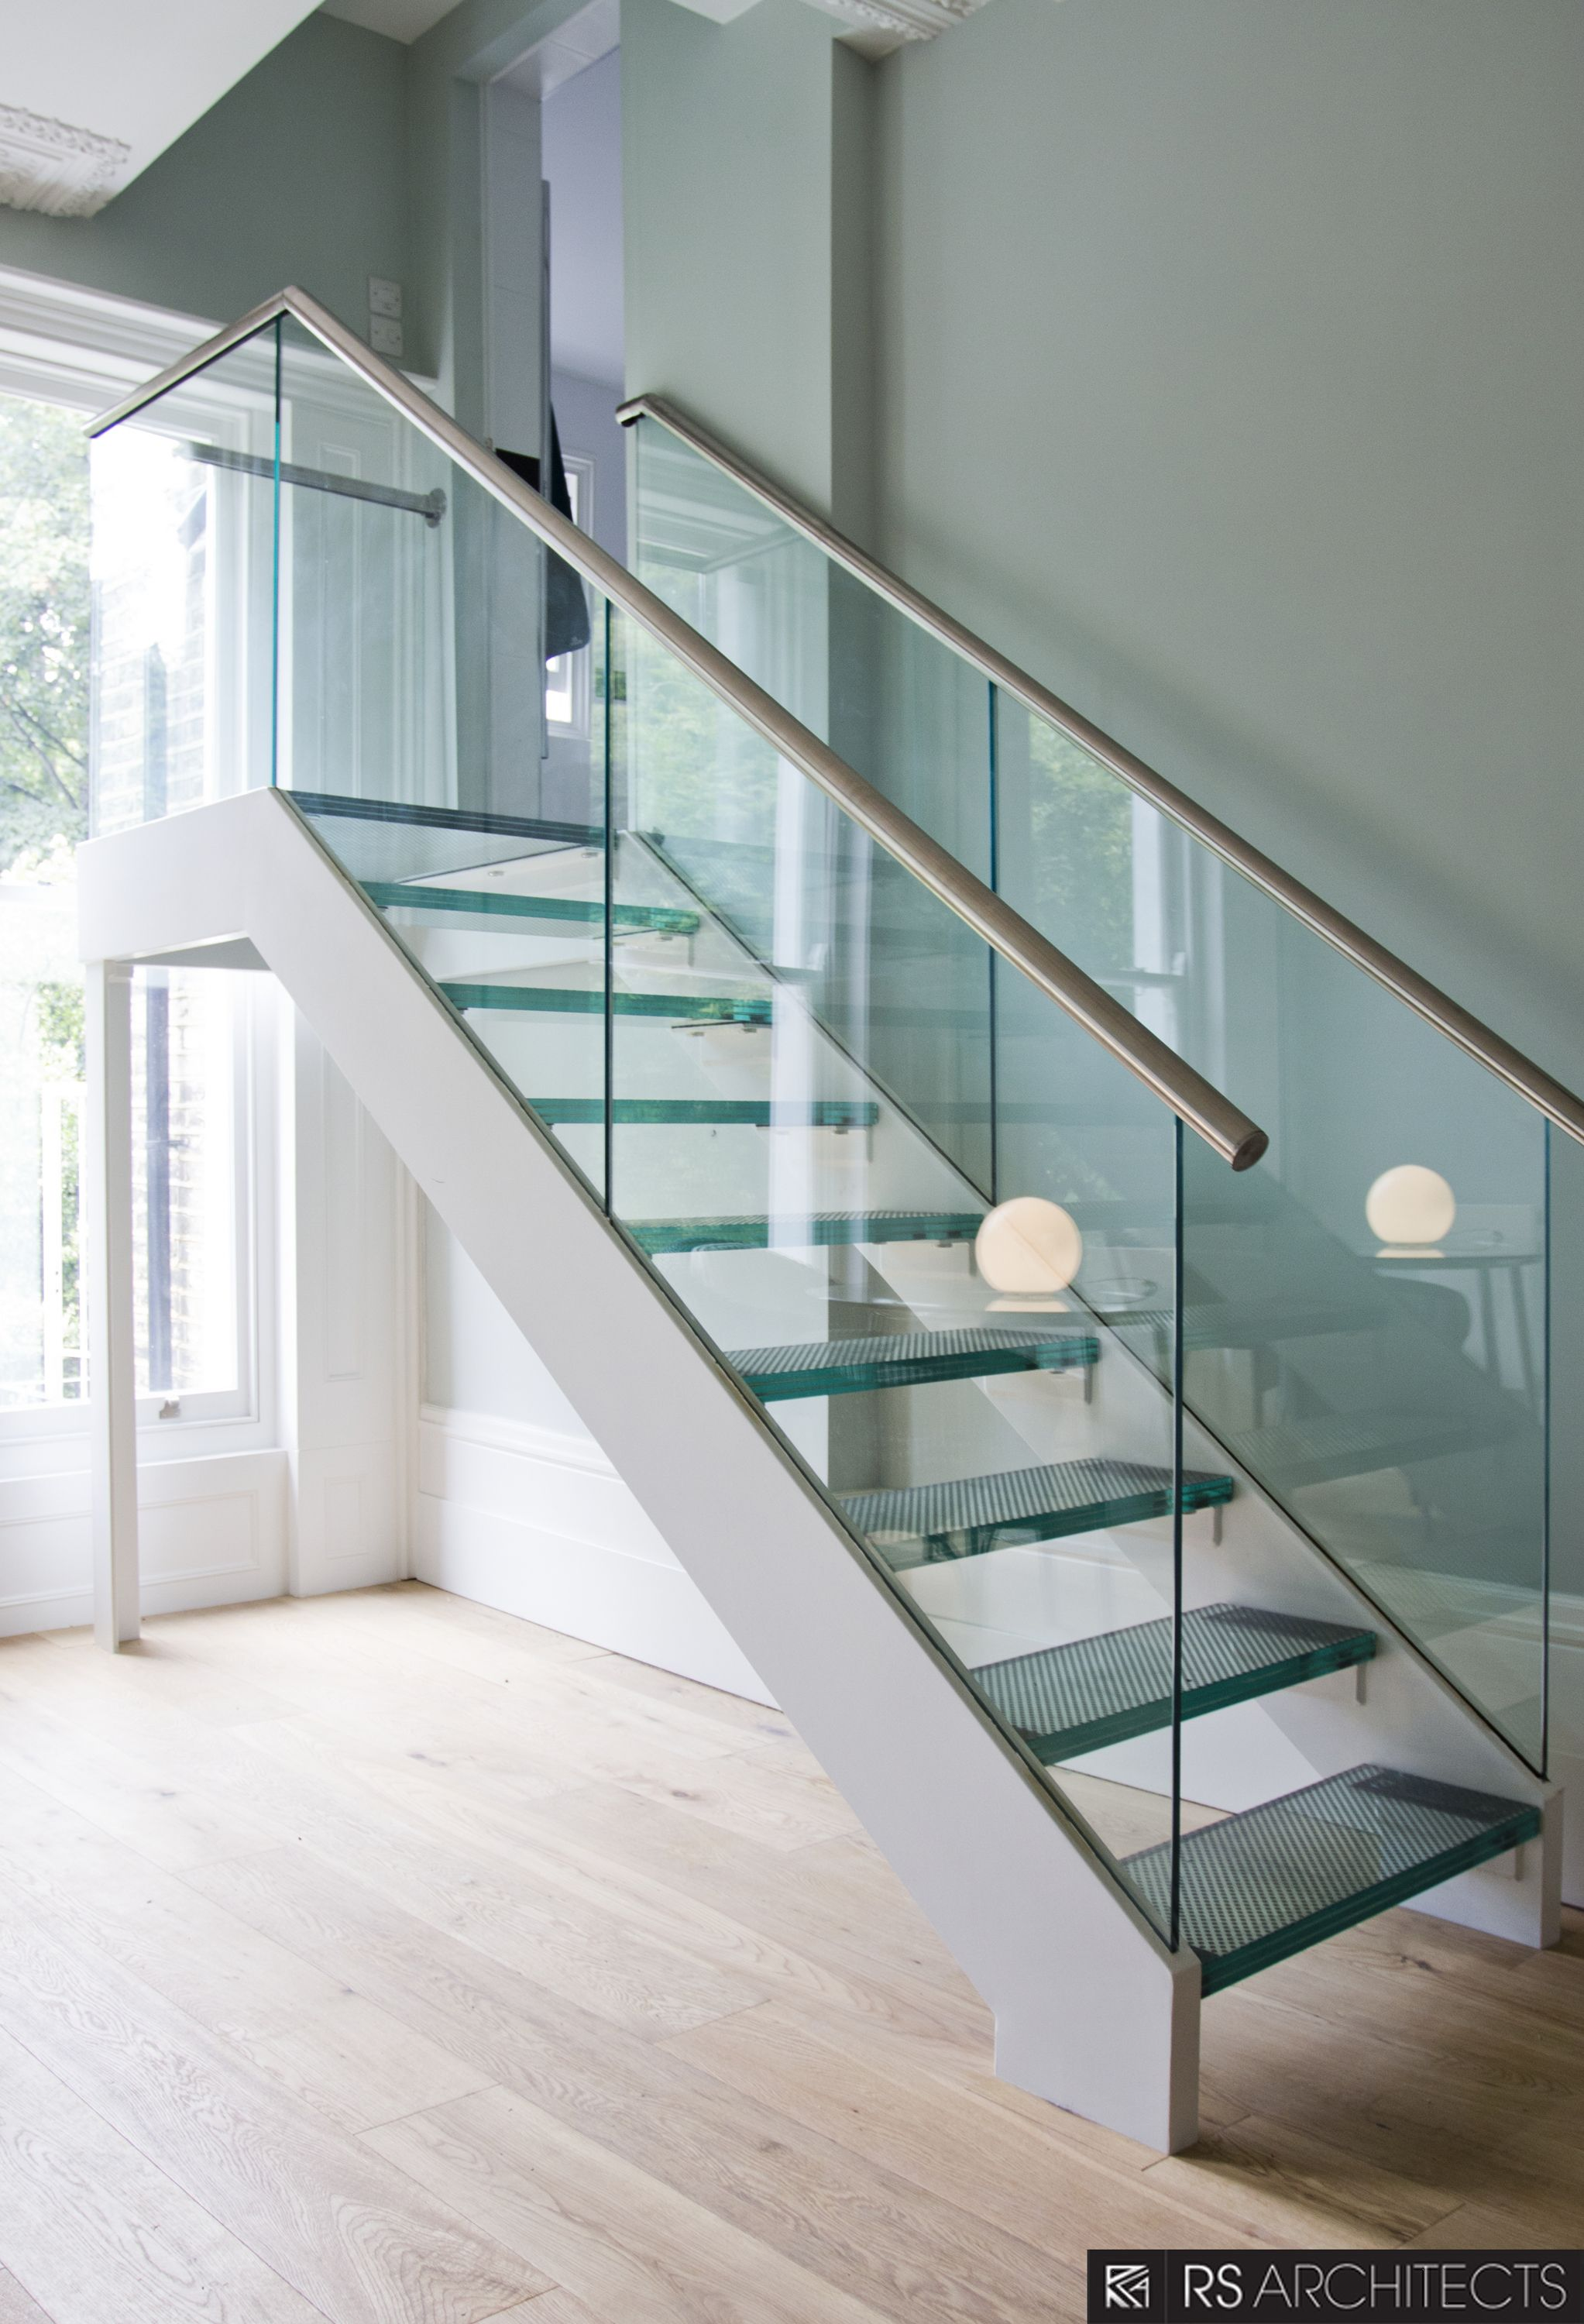 Wall Railings Designs our client bought this duplex with boring commecrial railings installed it would have be costly to remove and repair the concrete so we just added a Picturesque Double Chrome Handrail With Glass Balustrade And Landing Glass Stairs In Modern Open Plan Interior